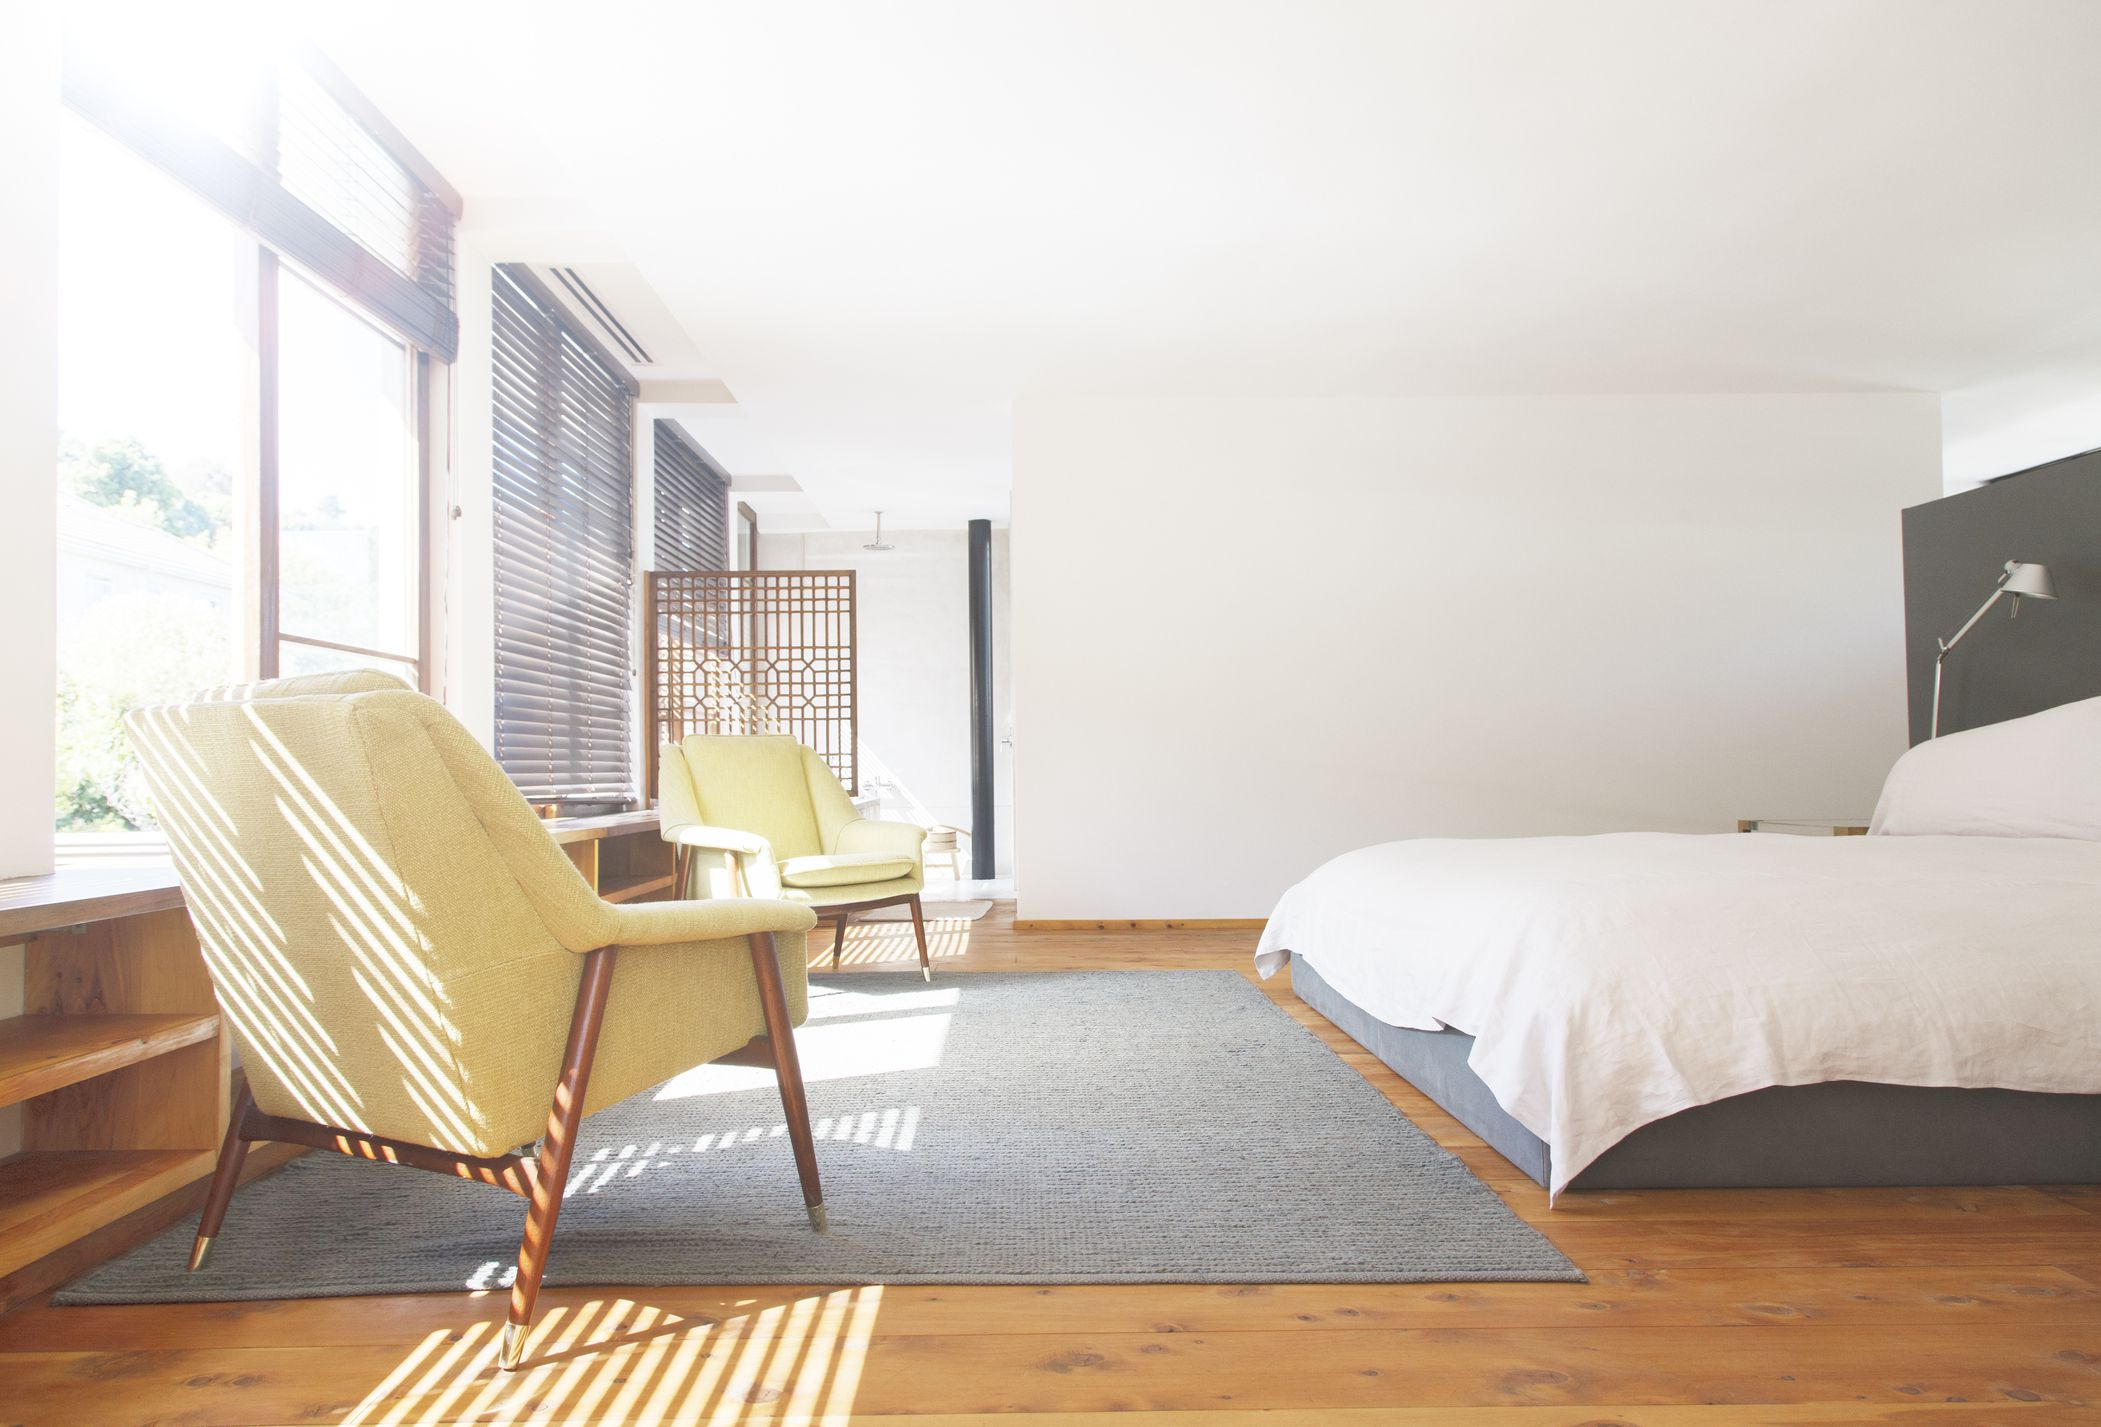 bedroom flooring. 6 Easy Steps to an Allergy Proof Bedroom Best Flooring Options for the